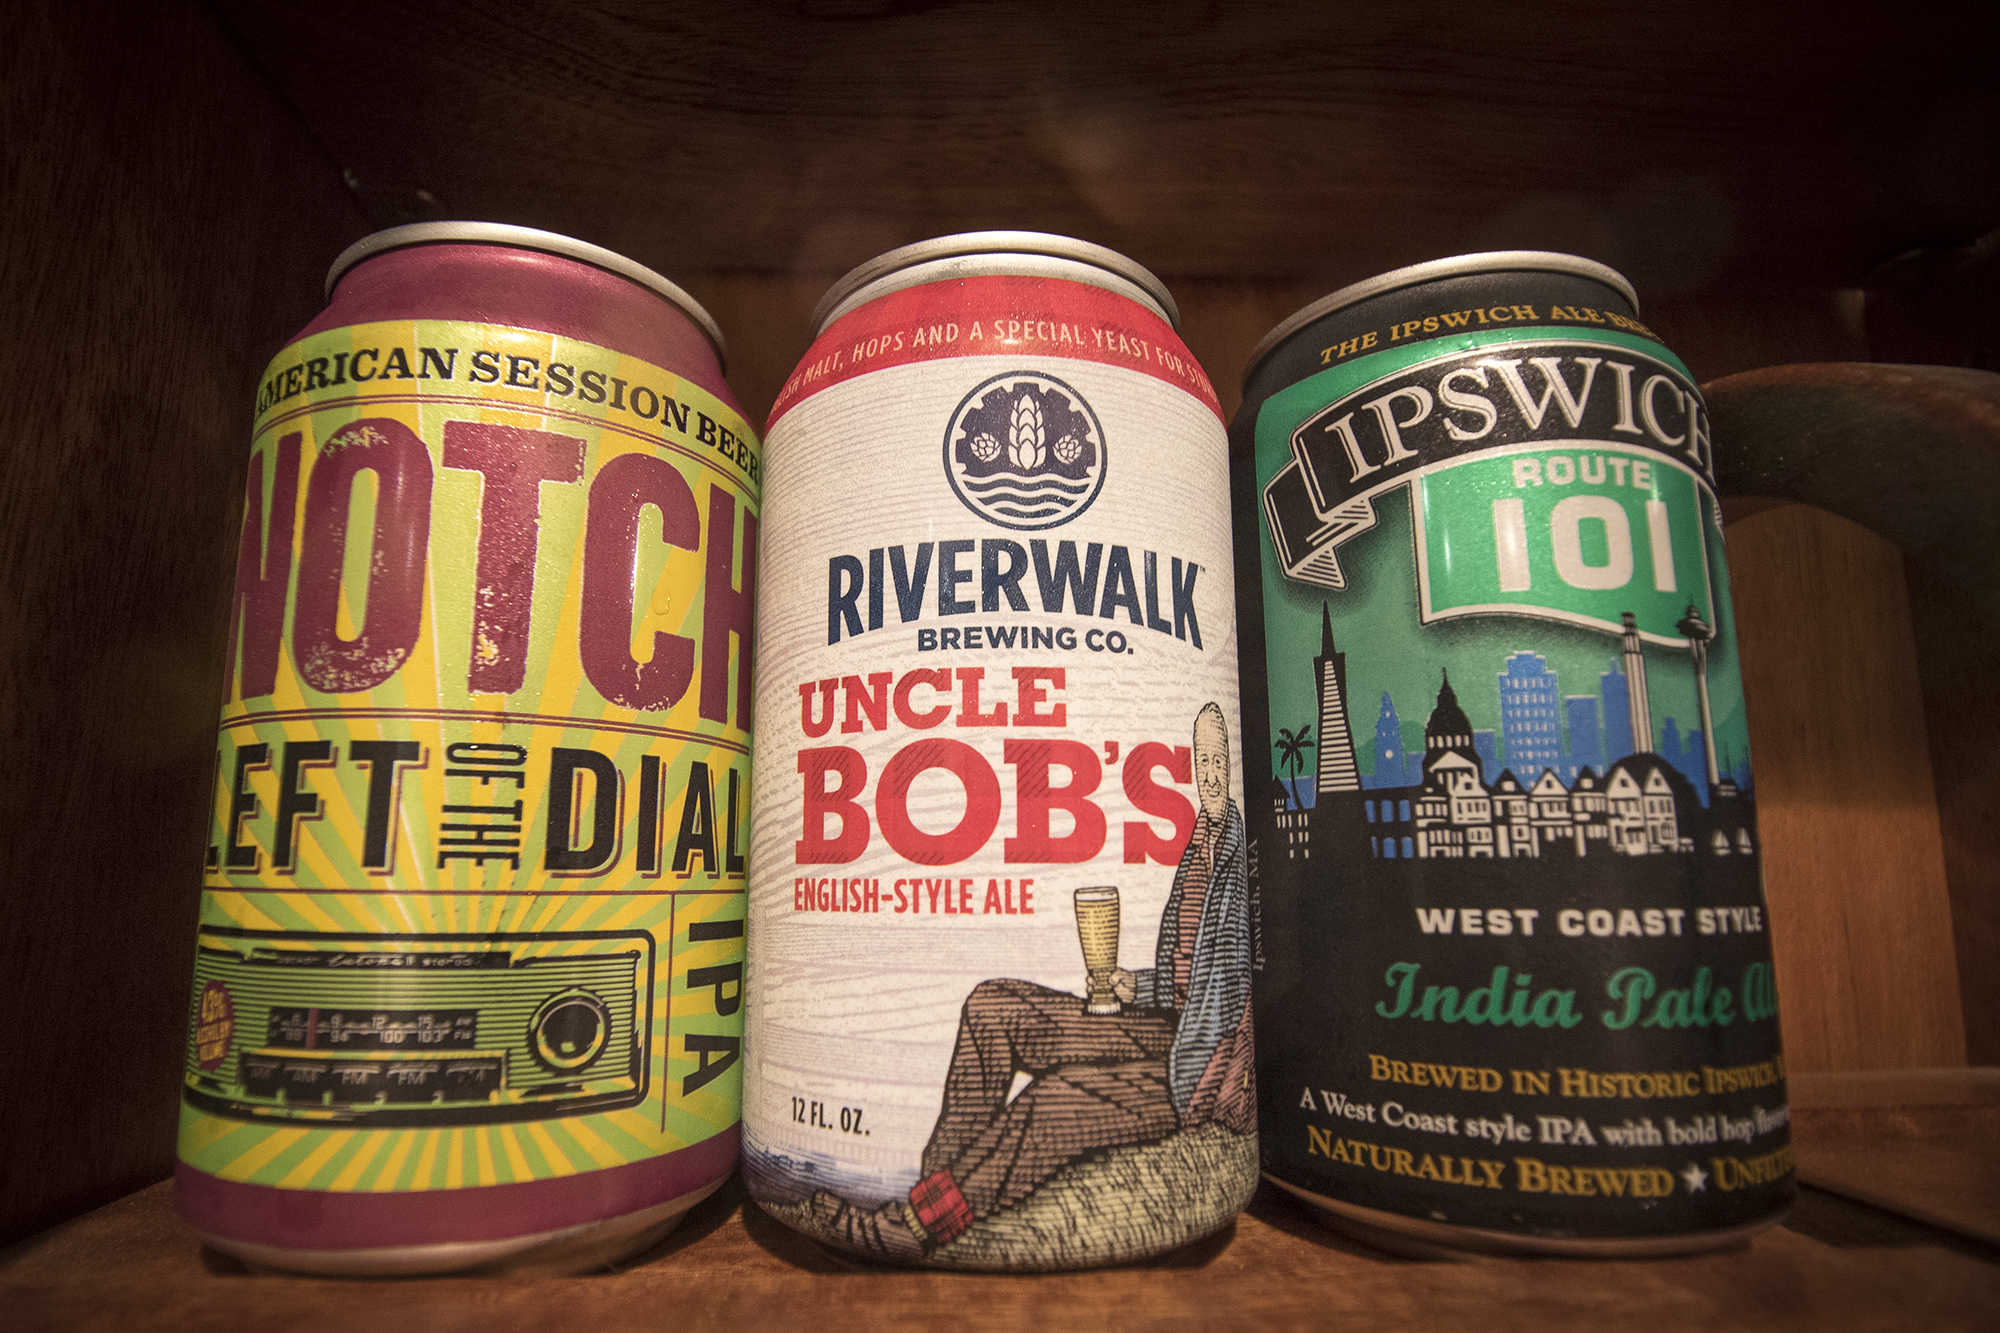 Keating is currently recommending three local beers (from left): Notch Brewing Co.'s Left of the Dial IPA, Riverwalk Brewing's Uncle Bob's English-style Ale, and Ipswich Brewing's Route 101 West Coast-style IPA. (Photograph by Jackson Mitchell)